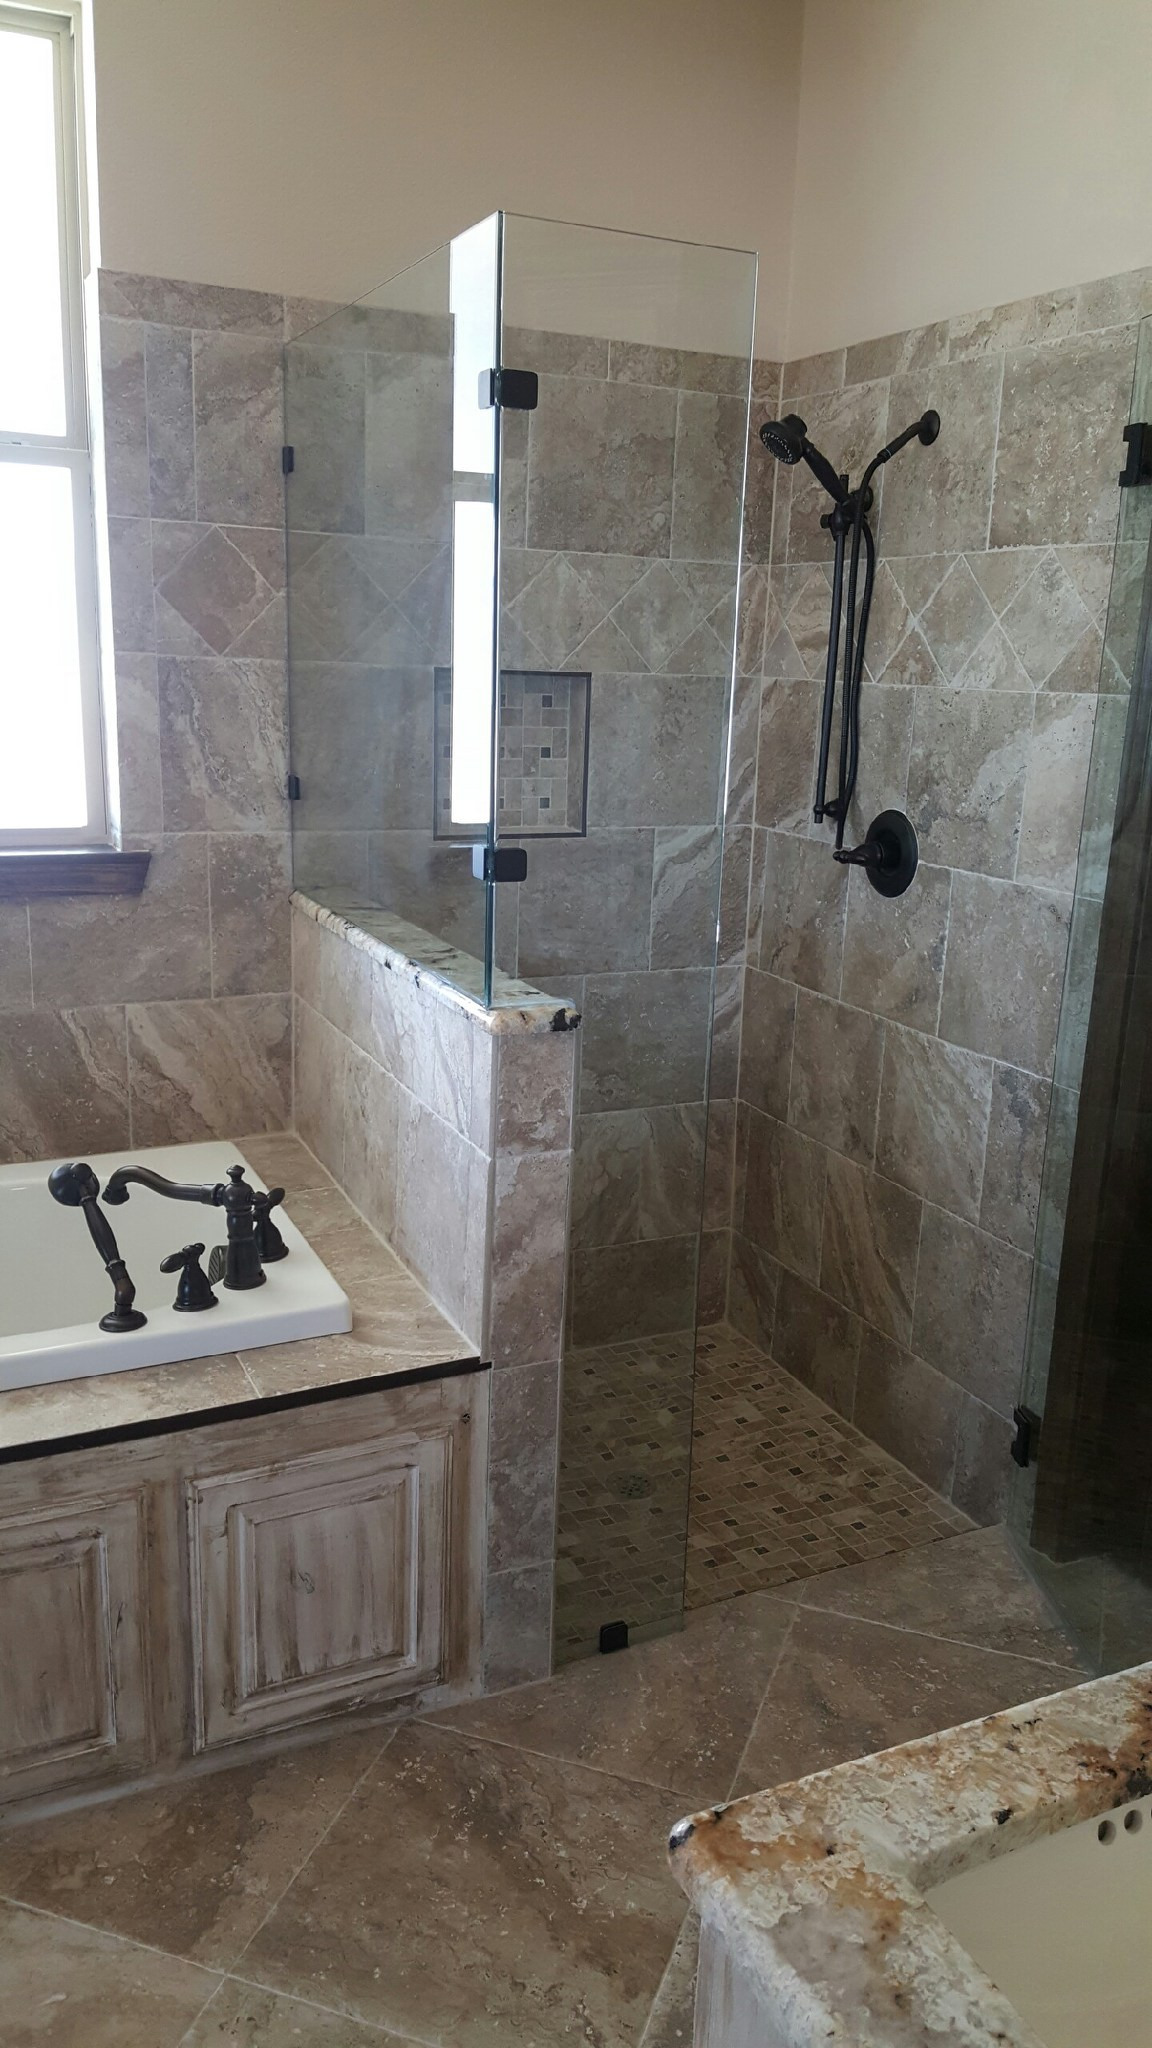 our services: dfw flooring & remodeling contractors | burleson tx